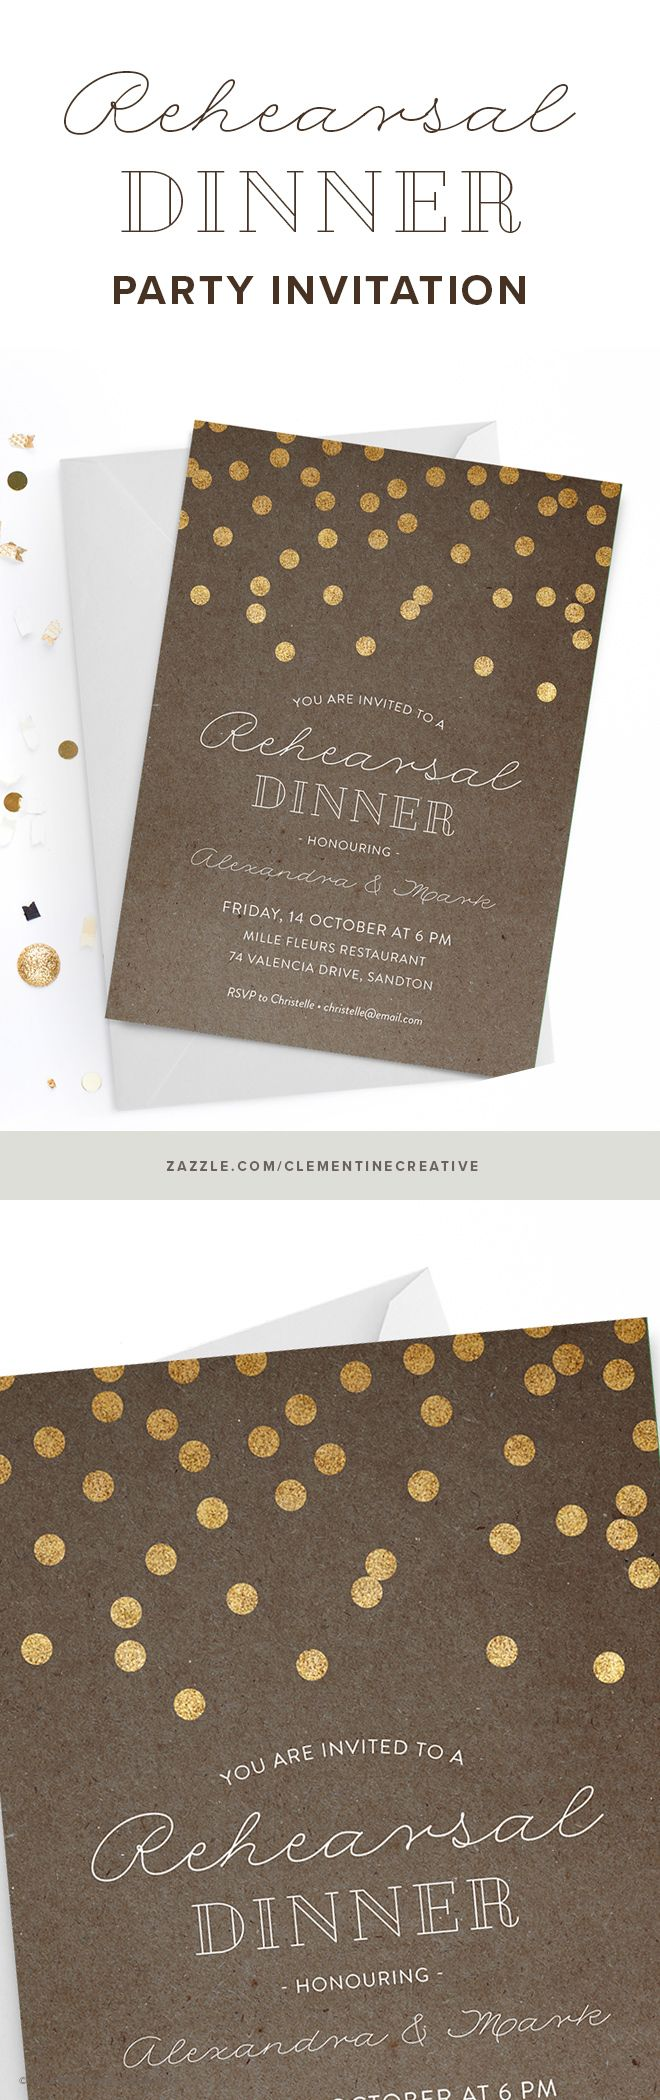 176 best invitations for special events images on pinterest